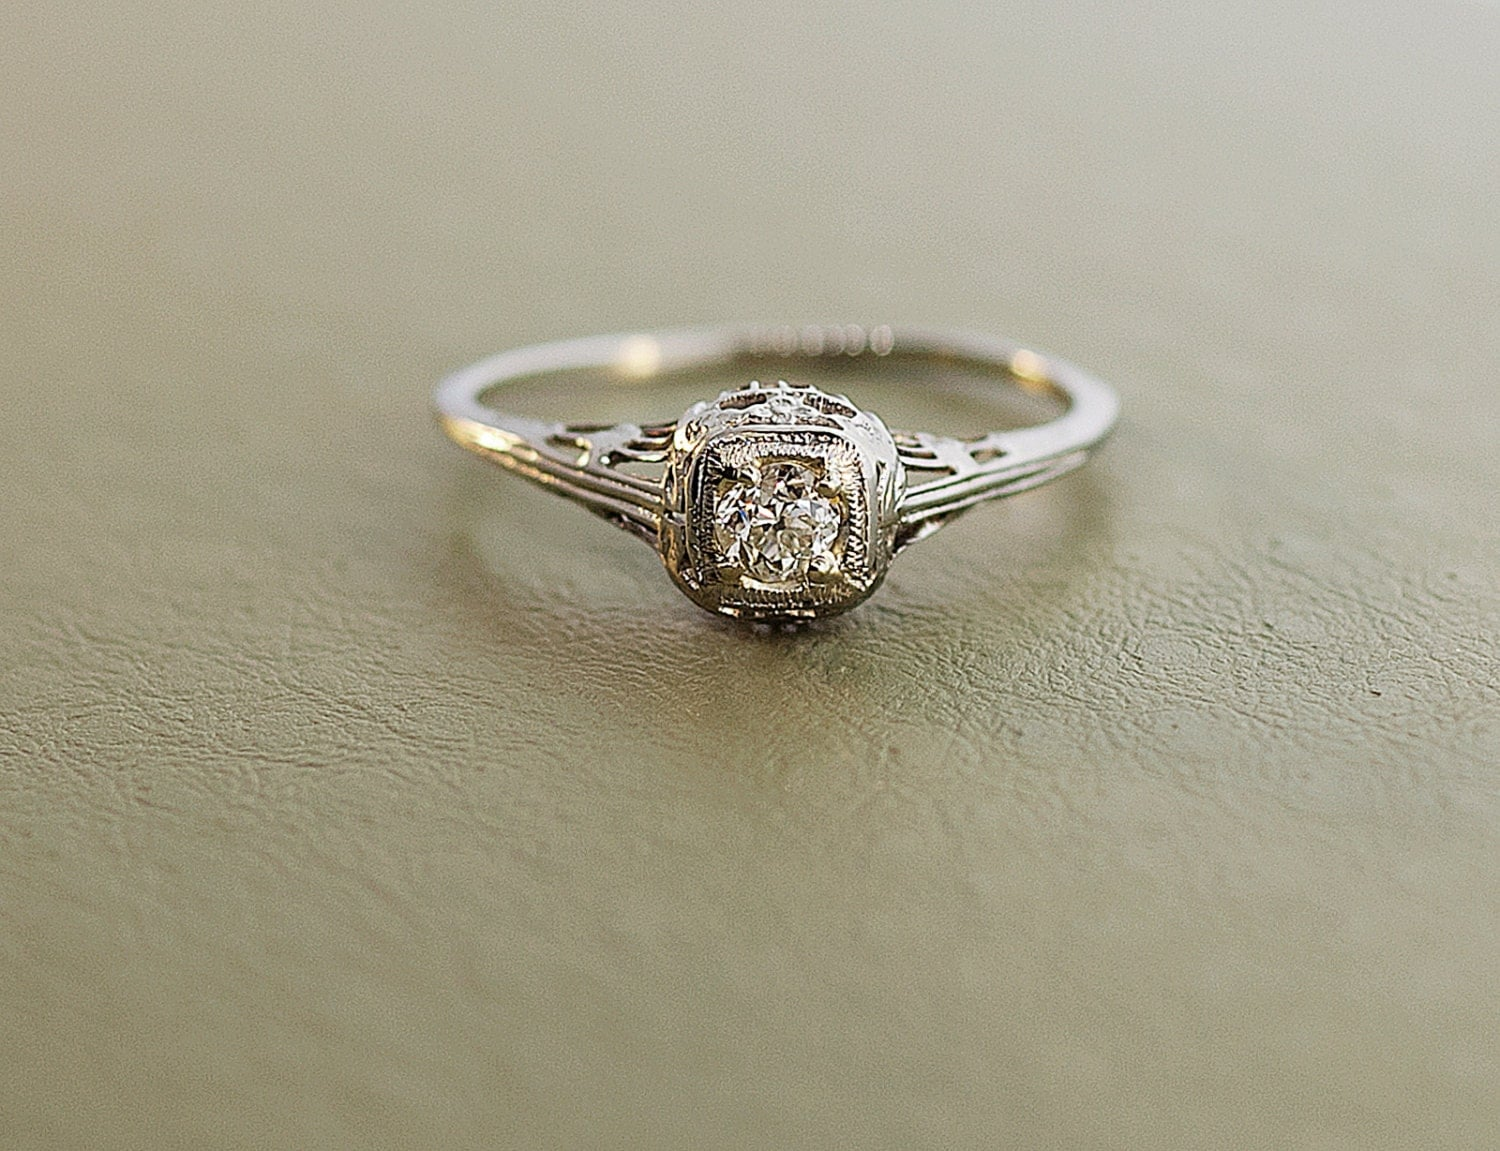 Antique 1920 s 18k White Gold Diamond Filigree Engagement